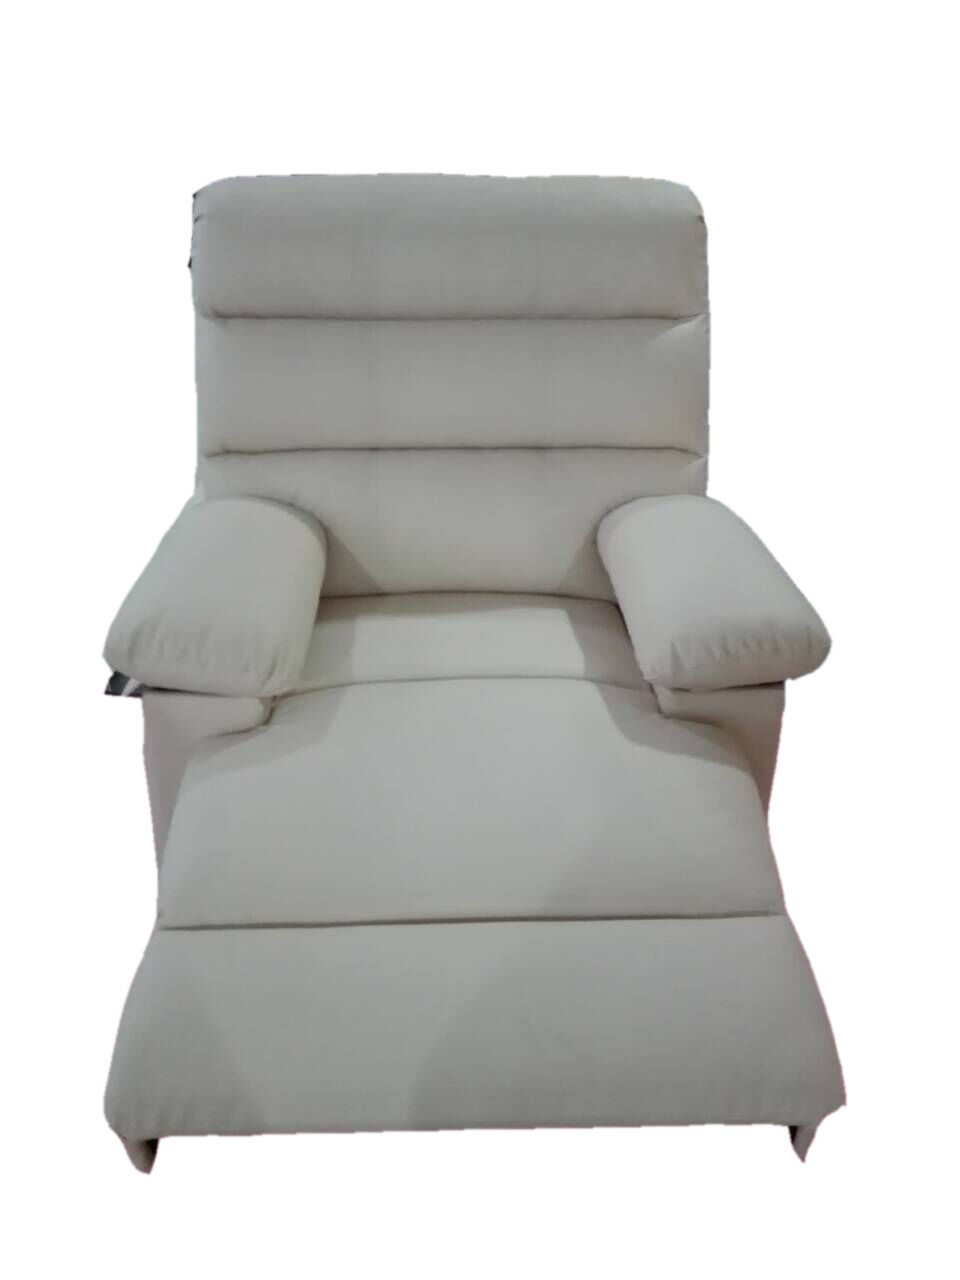 white leather recliner chair white leather recliner chair  - white leather recliner chair white leather recliner chair suppliers andmanufacturers at alibabacom